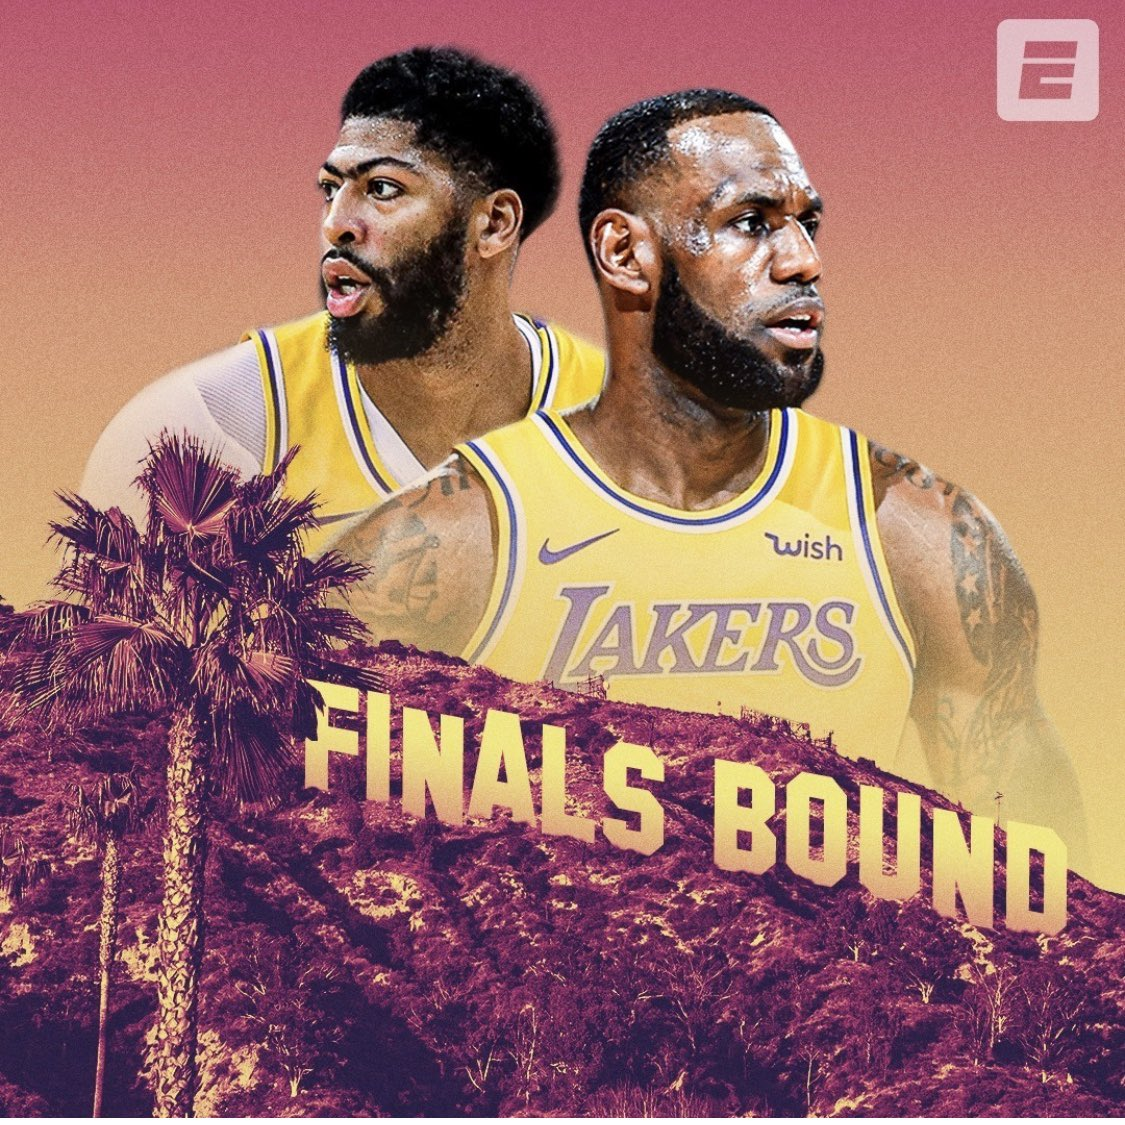 Wow what a long 10 Years it's been feels good 2 be back on top. Just wish this game was at Staples Center and Kobe was alive to watch this! #lakers #lakeshow #MambaMentality #Champions #kb24 https://t.co/jFZtXz3arD